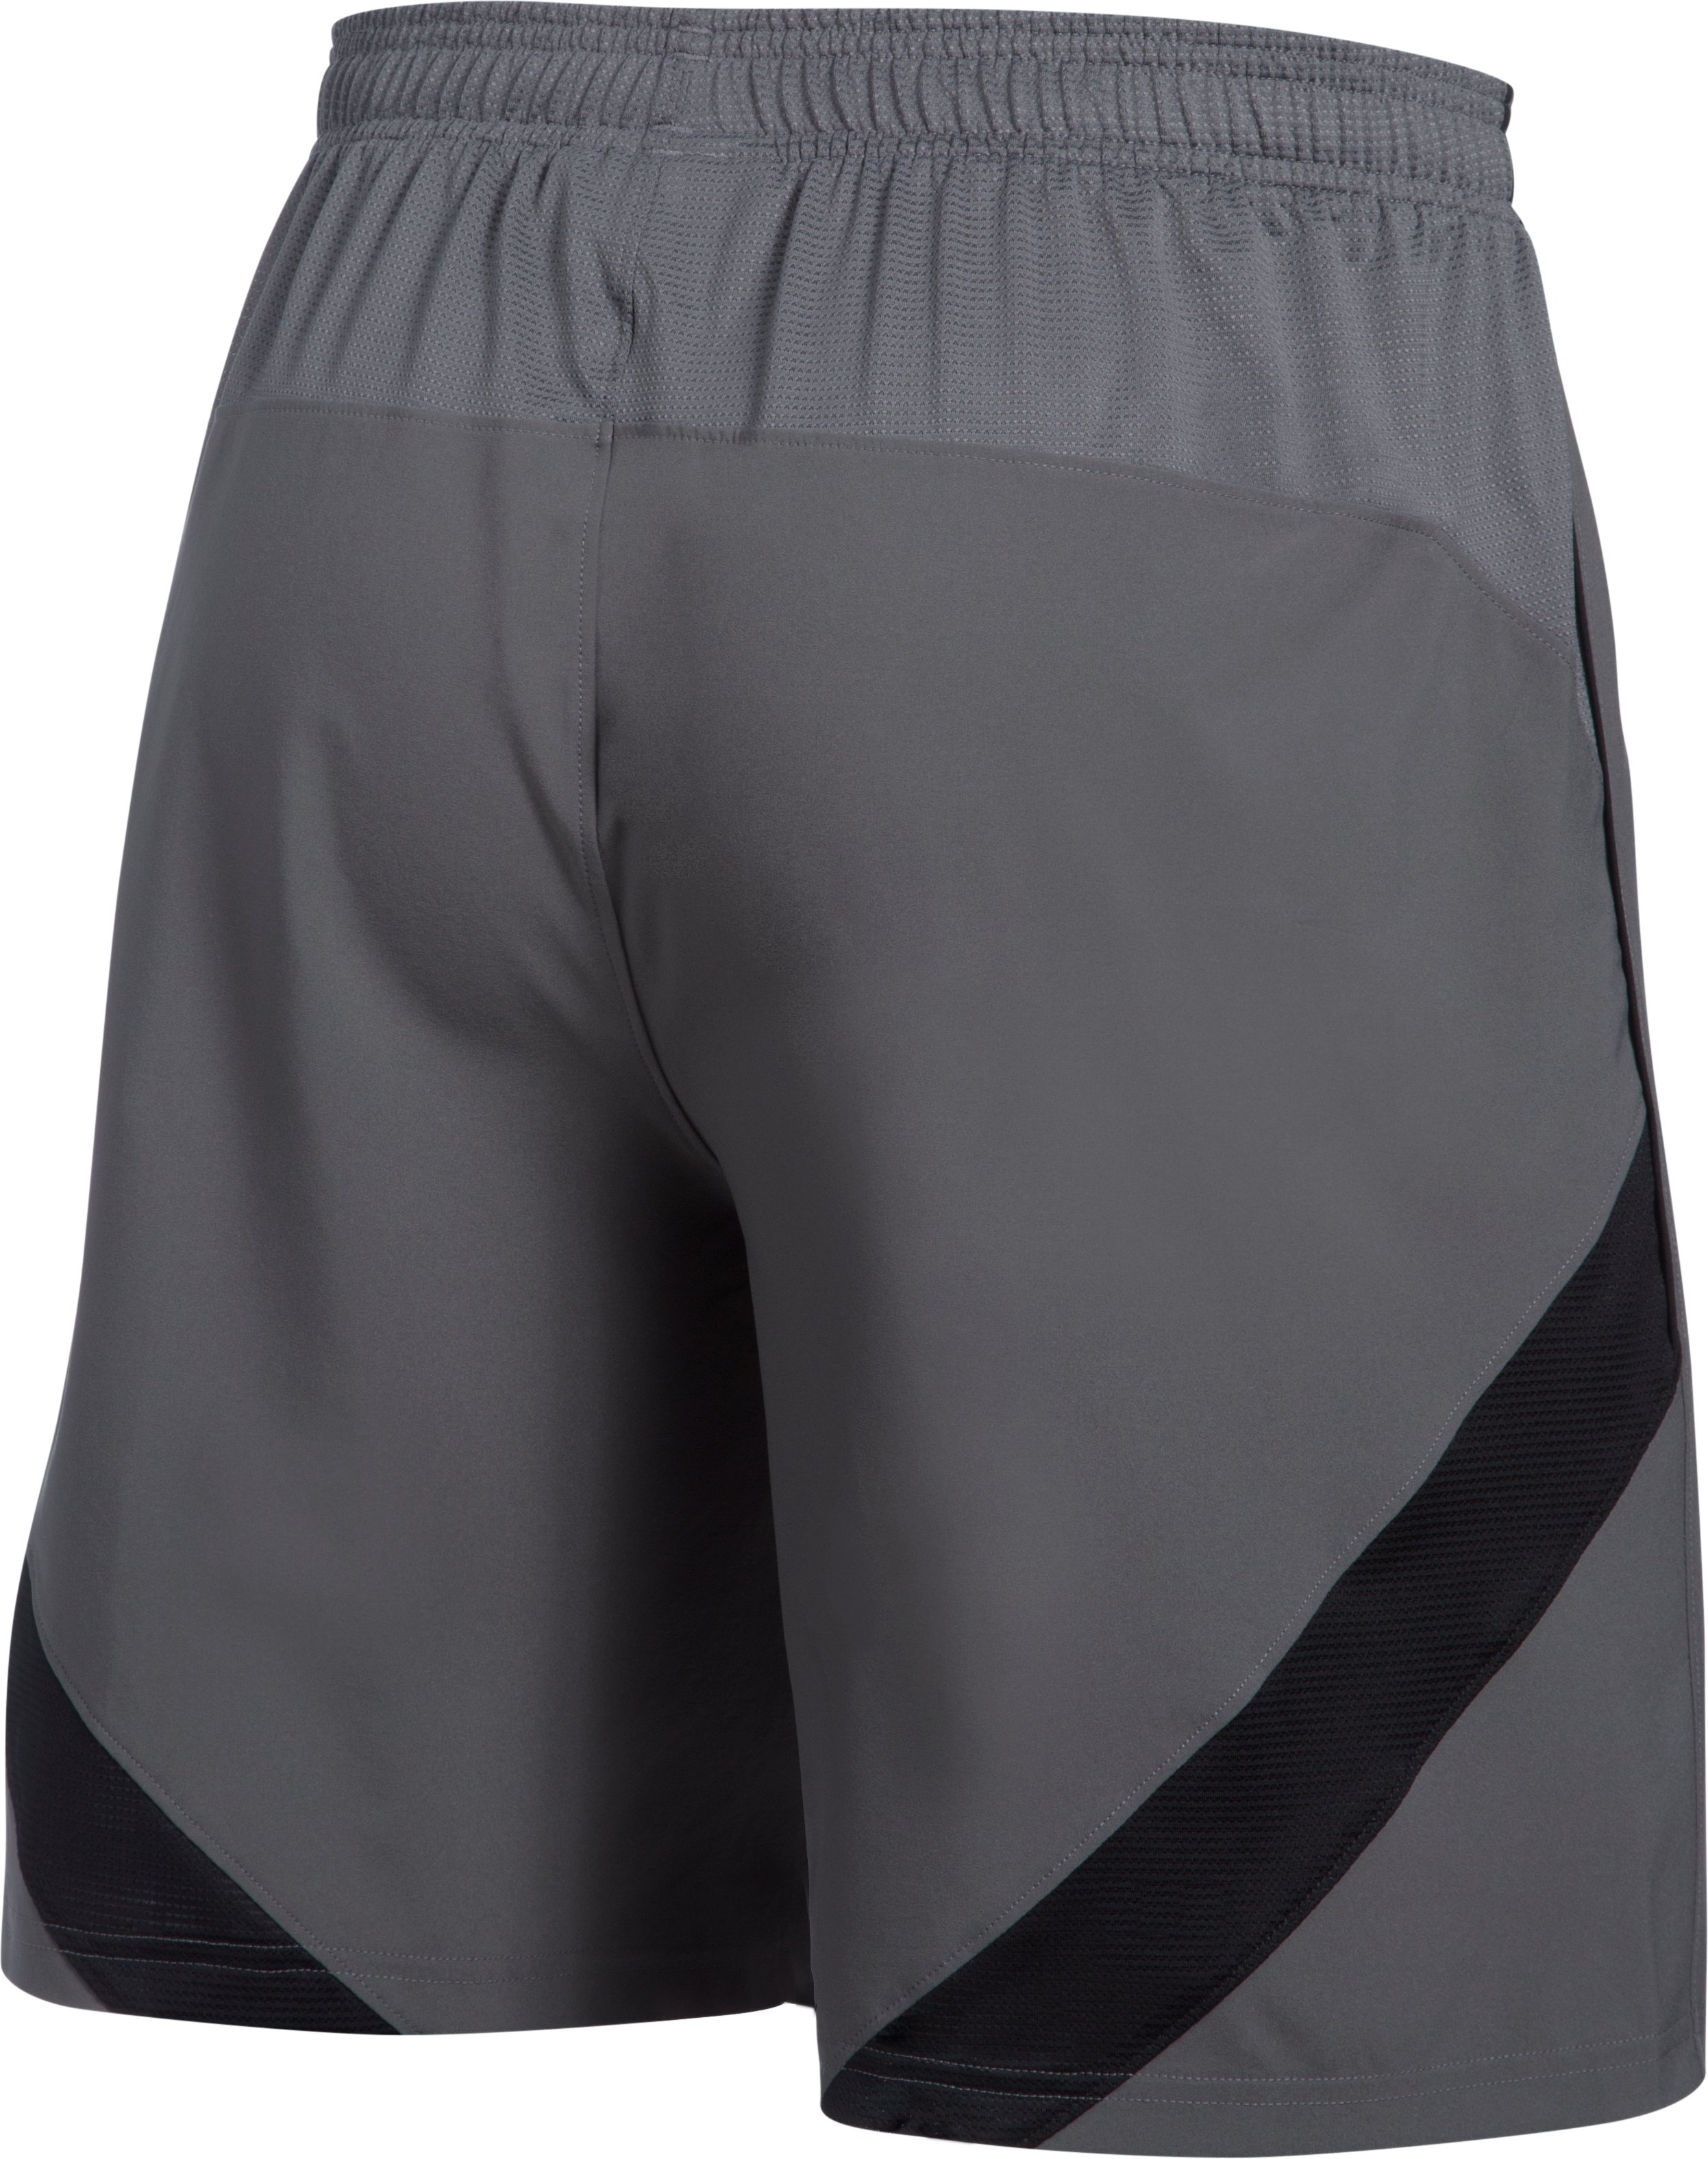 Men's UA Pitch Woven Shorts, Graphite